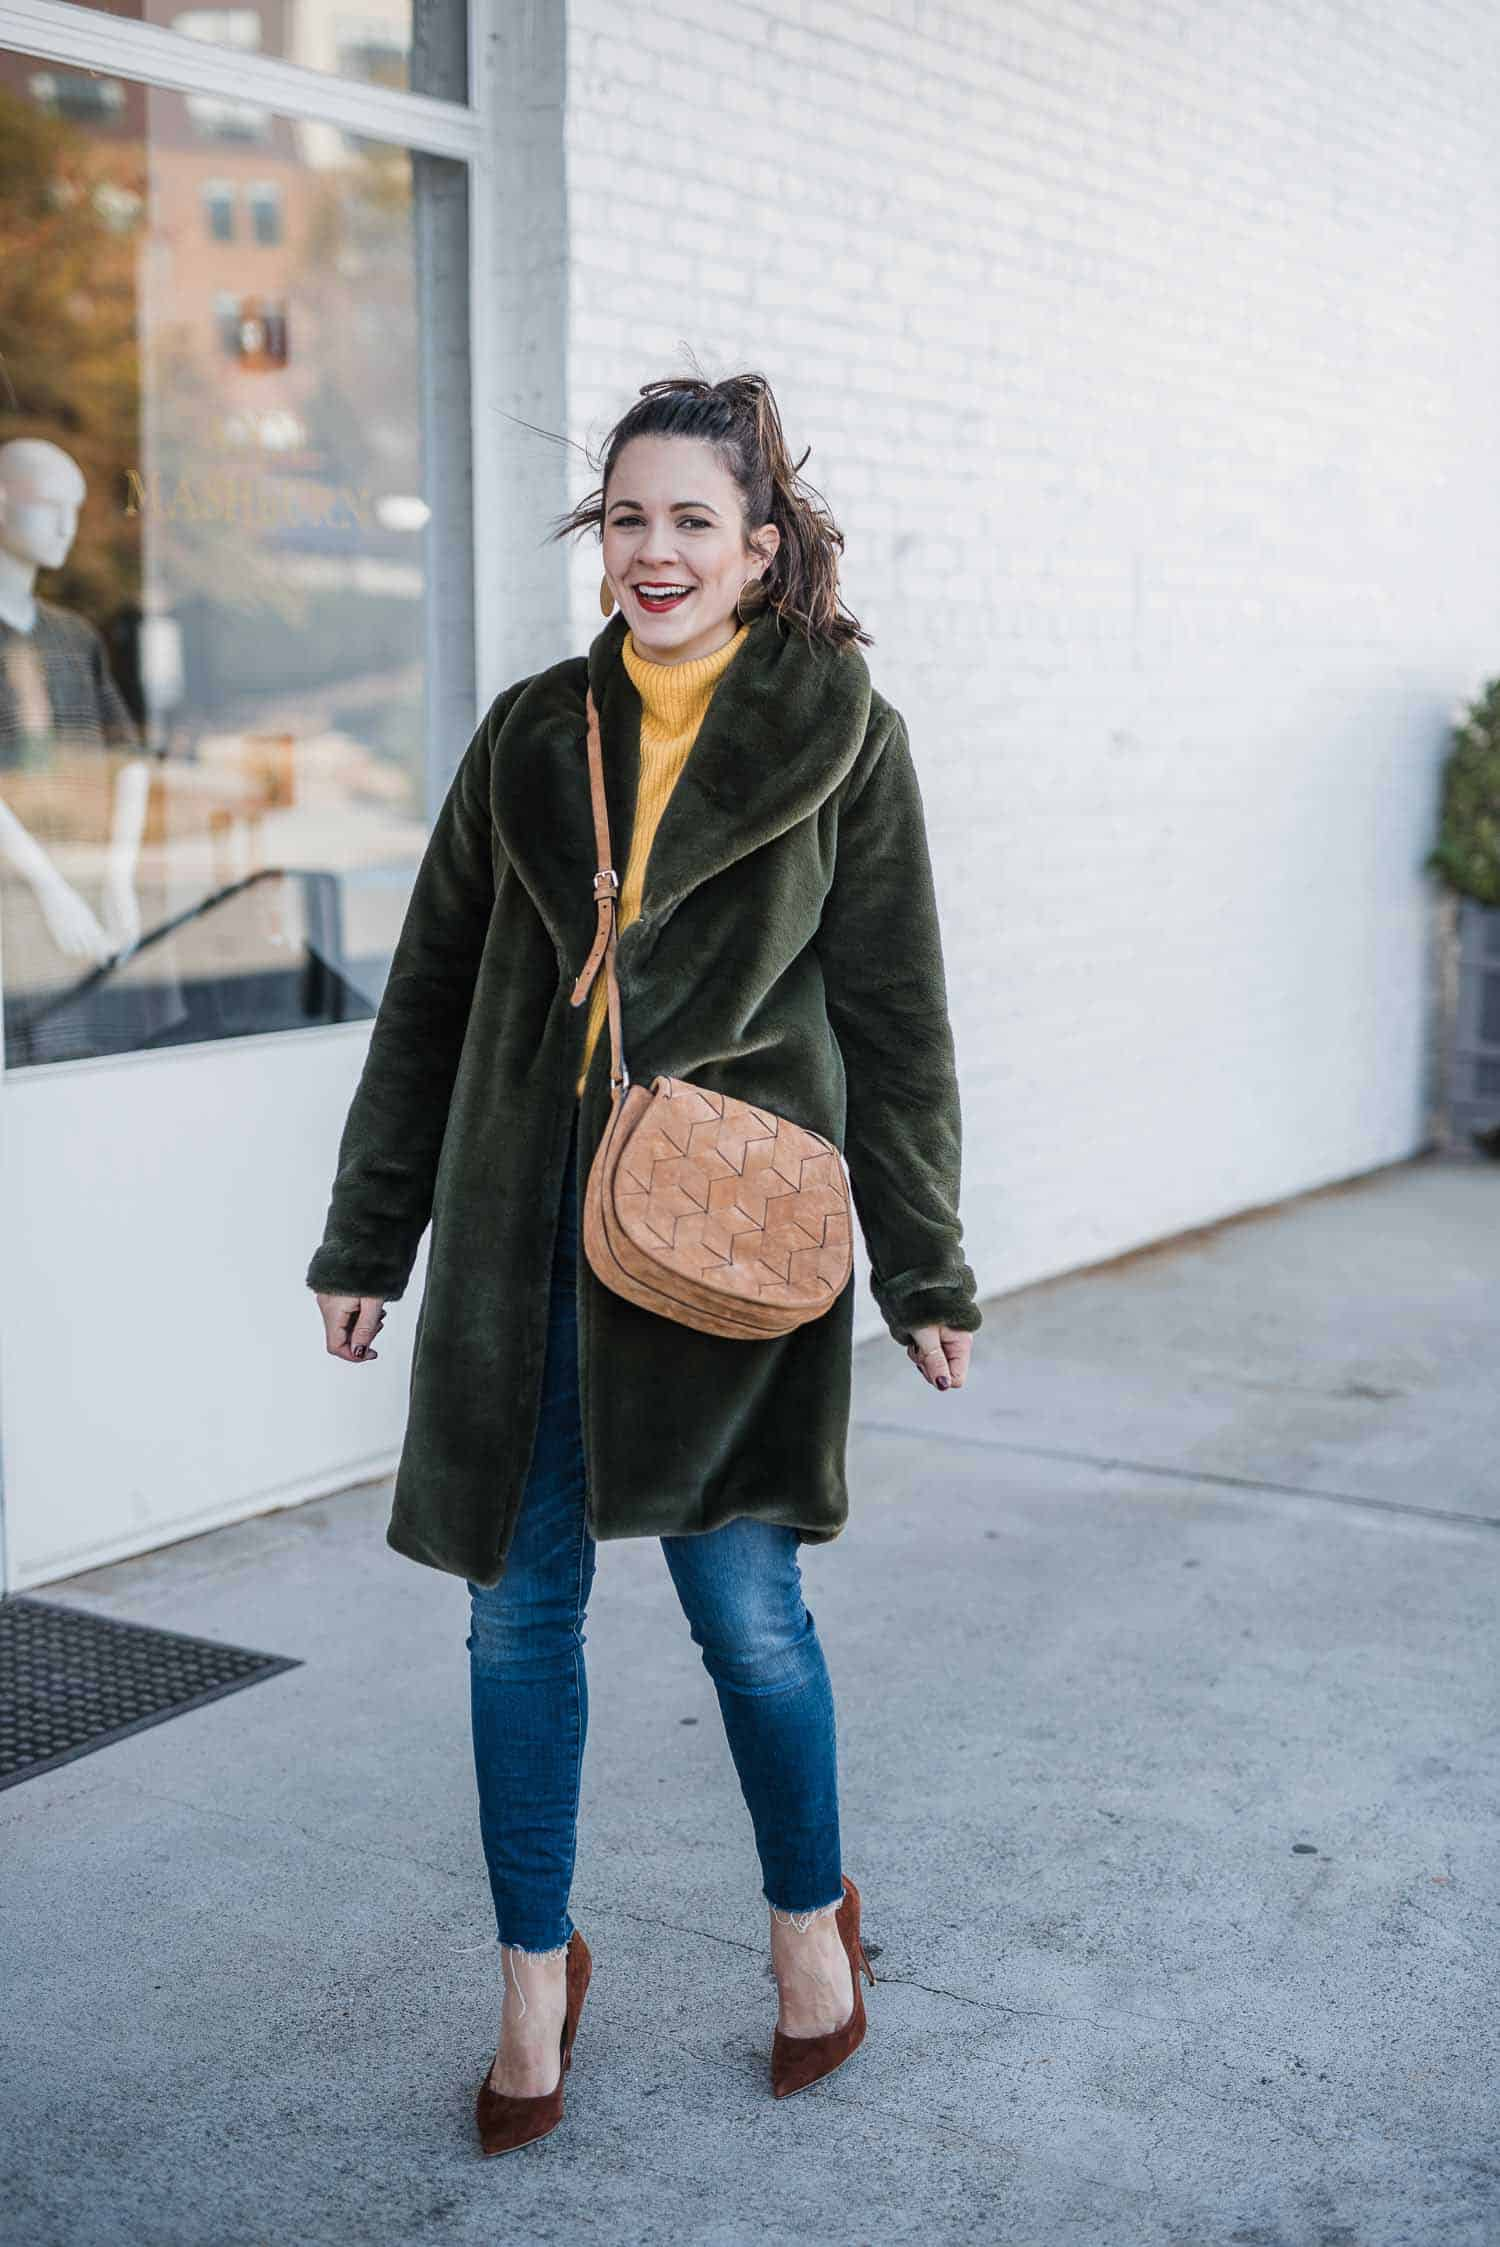 The Green Faux Fur Coat I Unexpectedly Fell In Love With